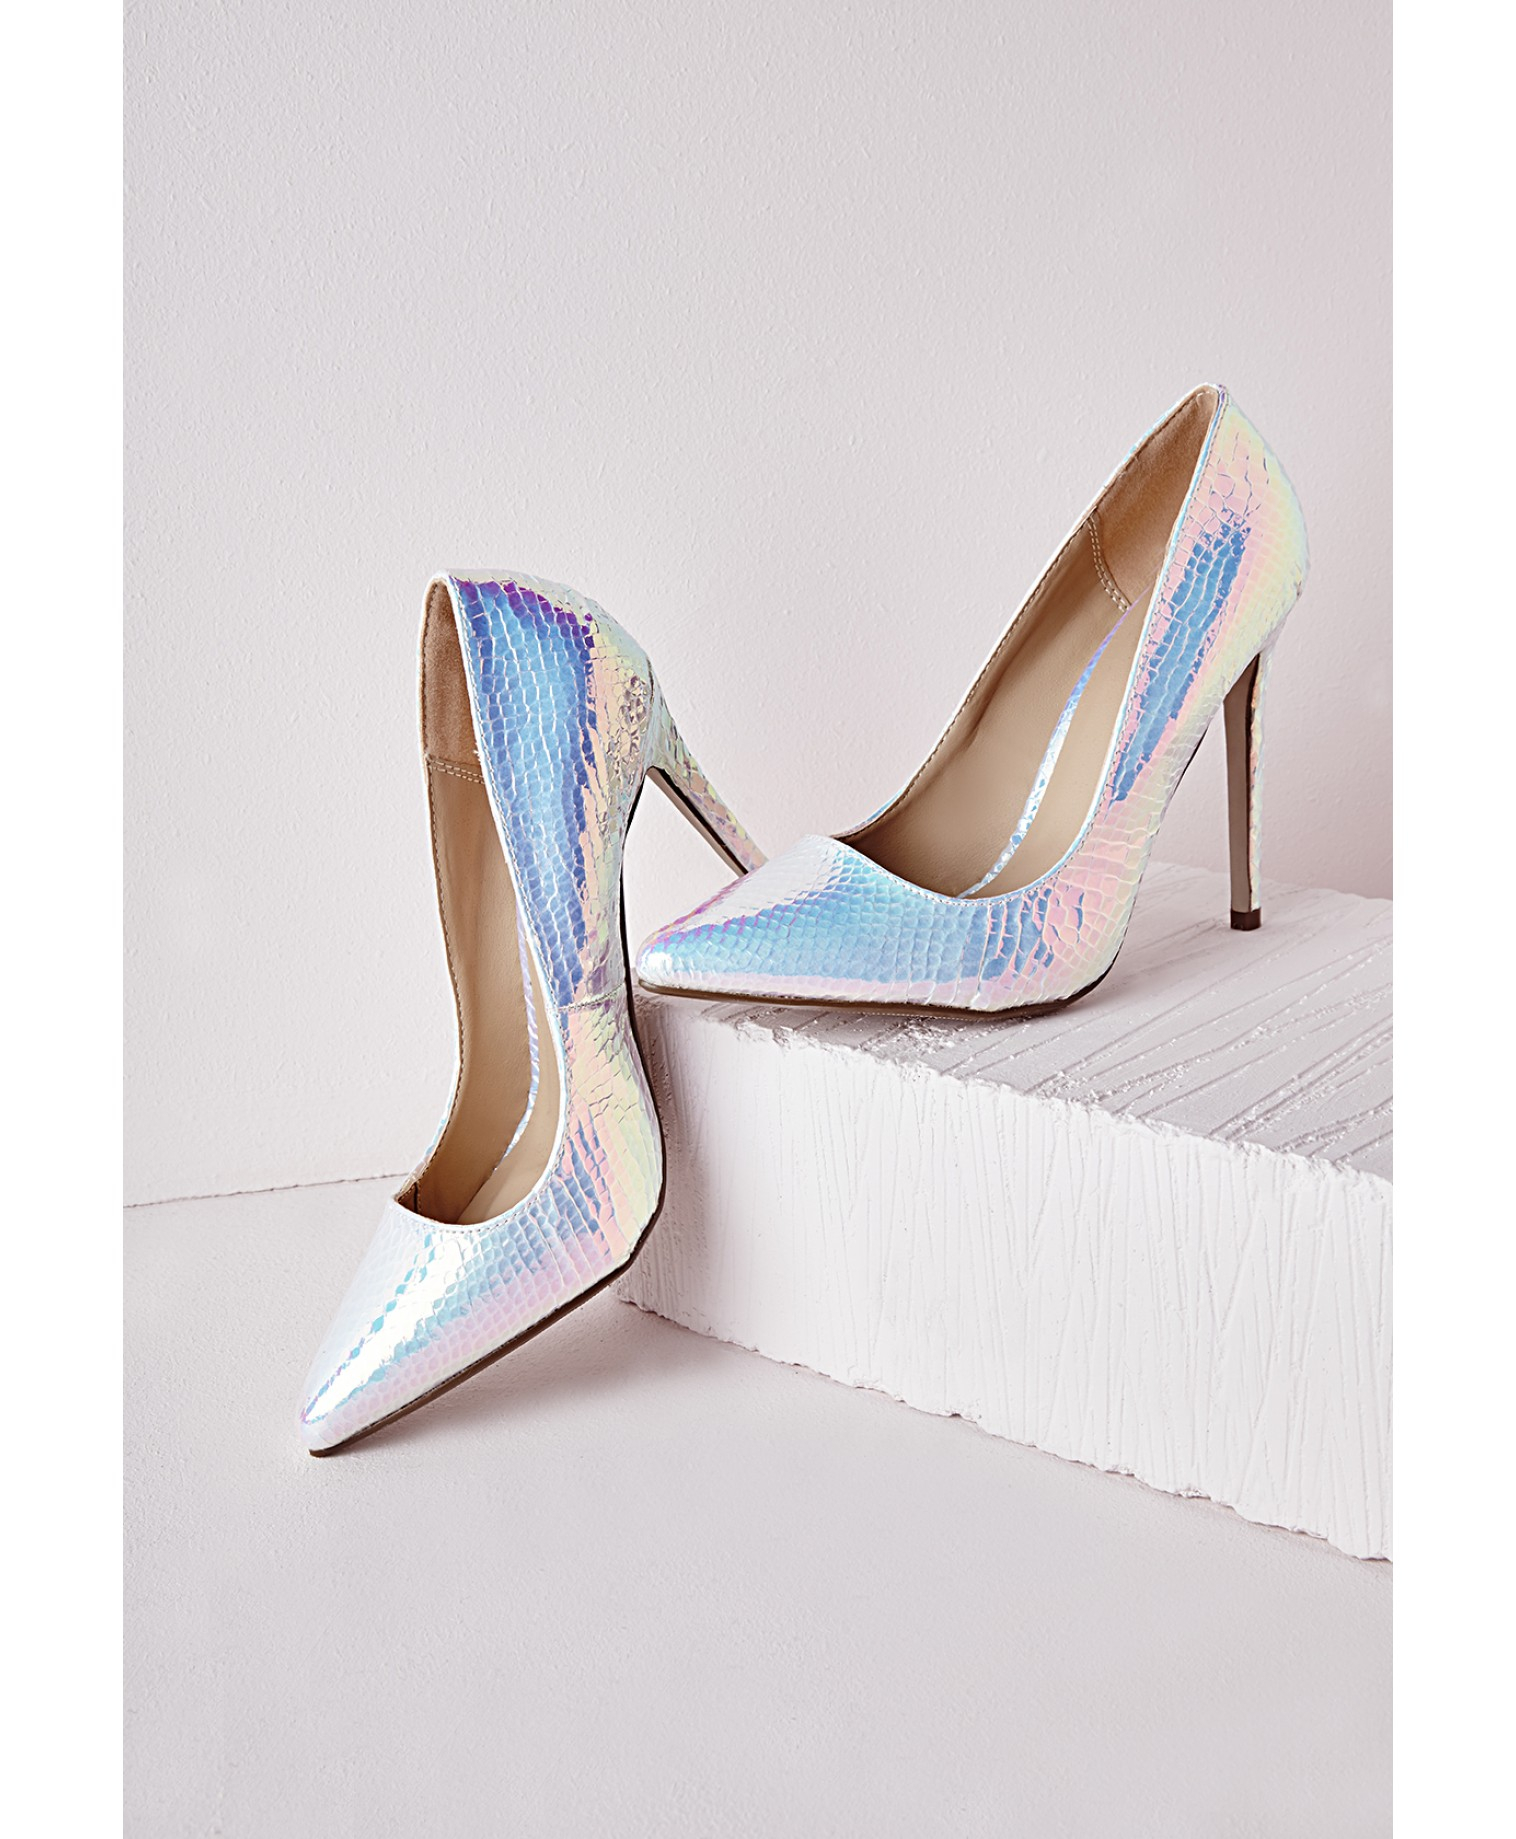 Stiletto Heel Court Shoes White Holographic